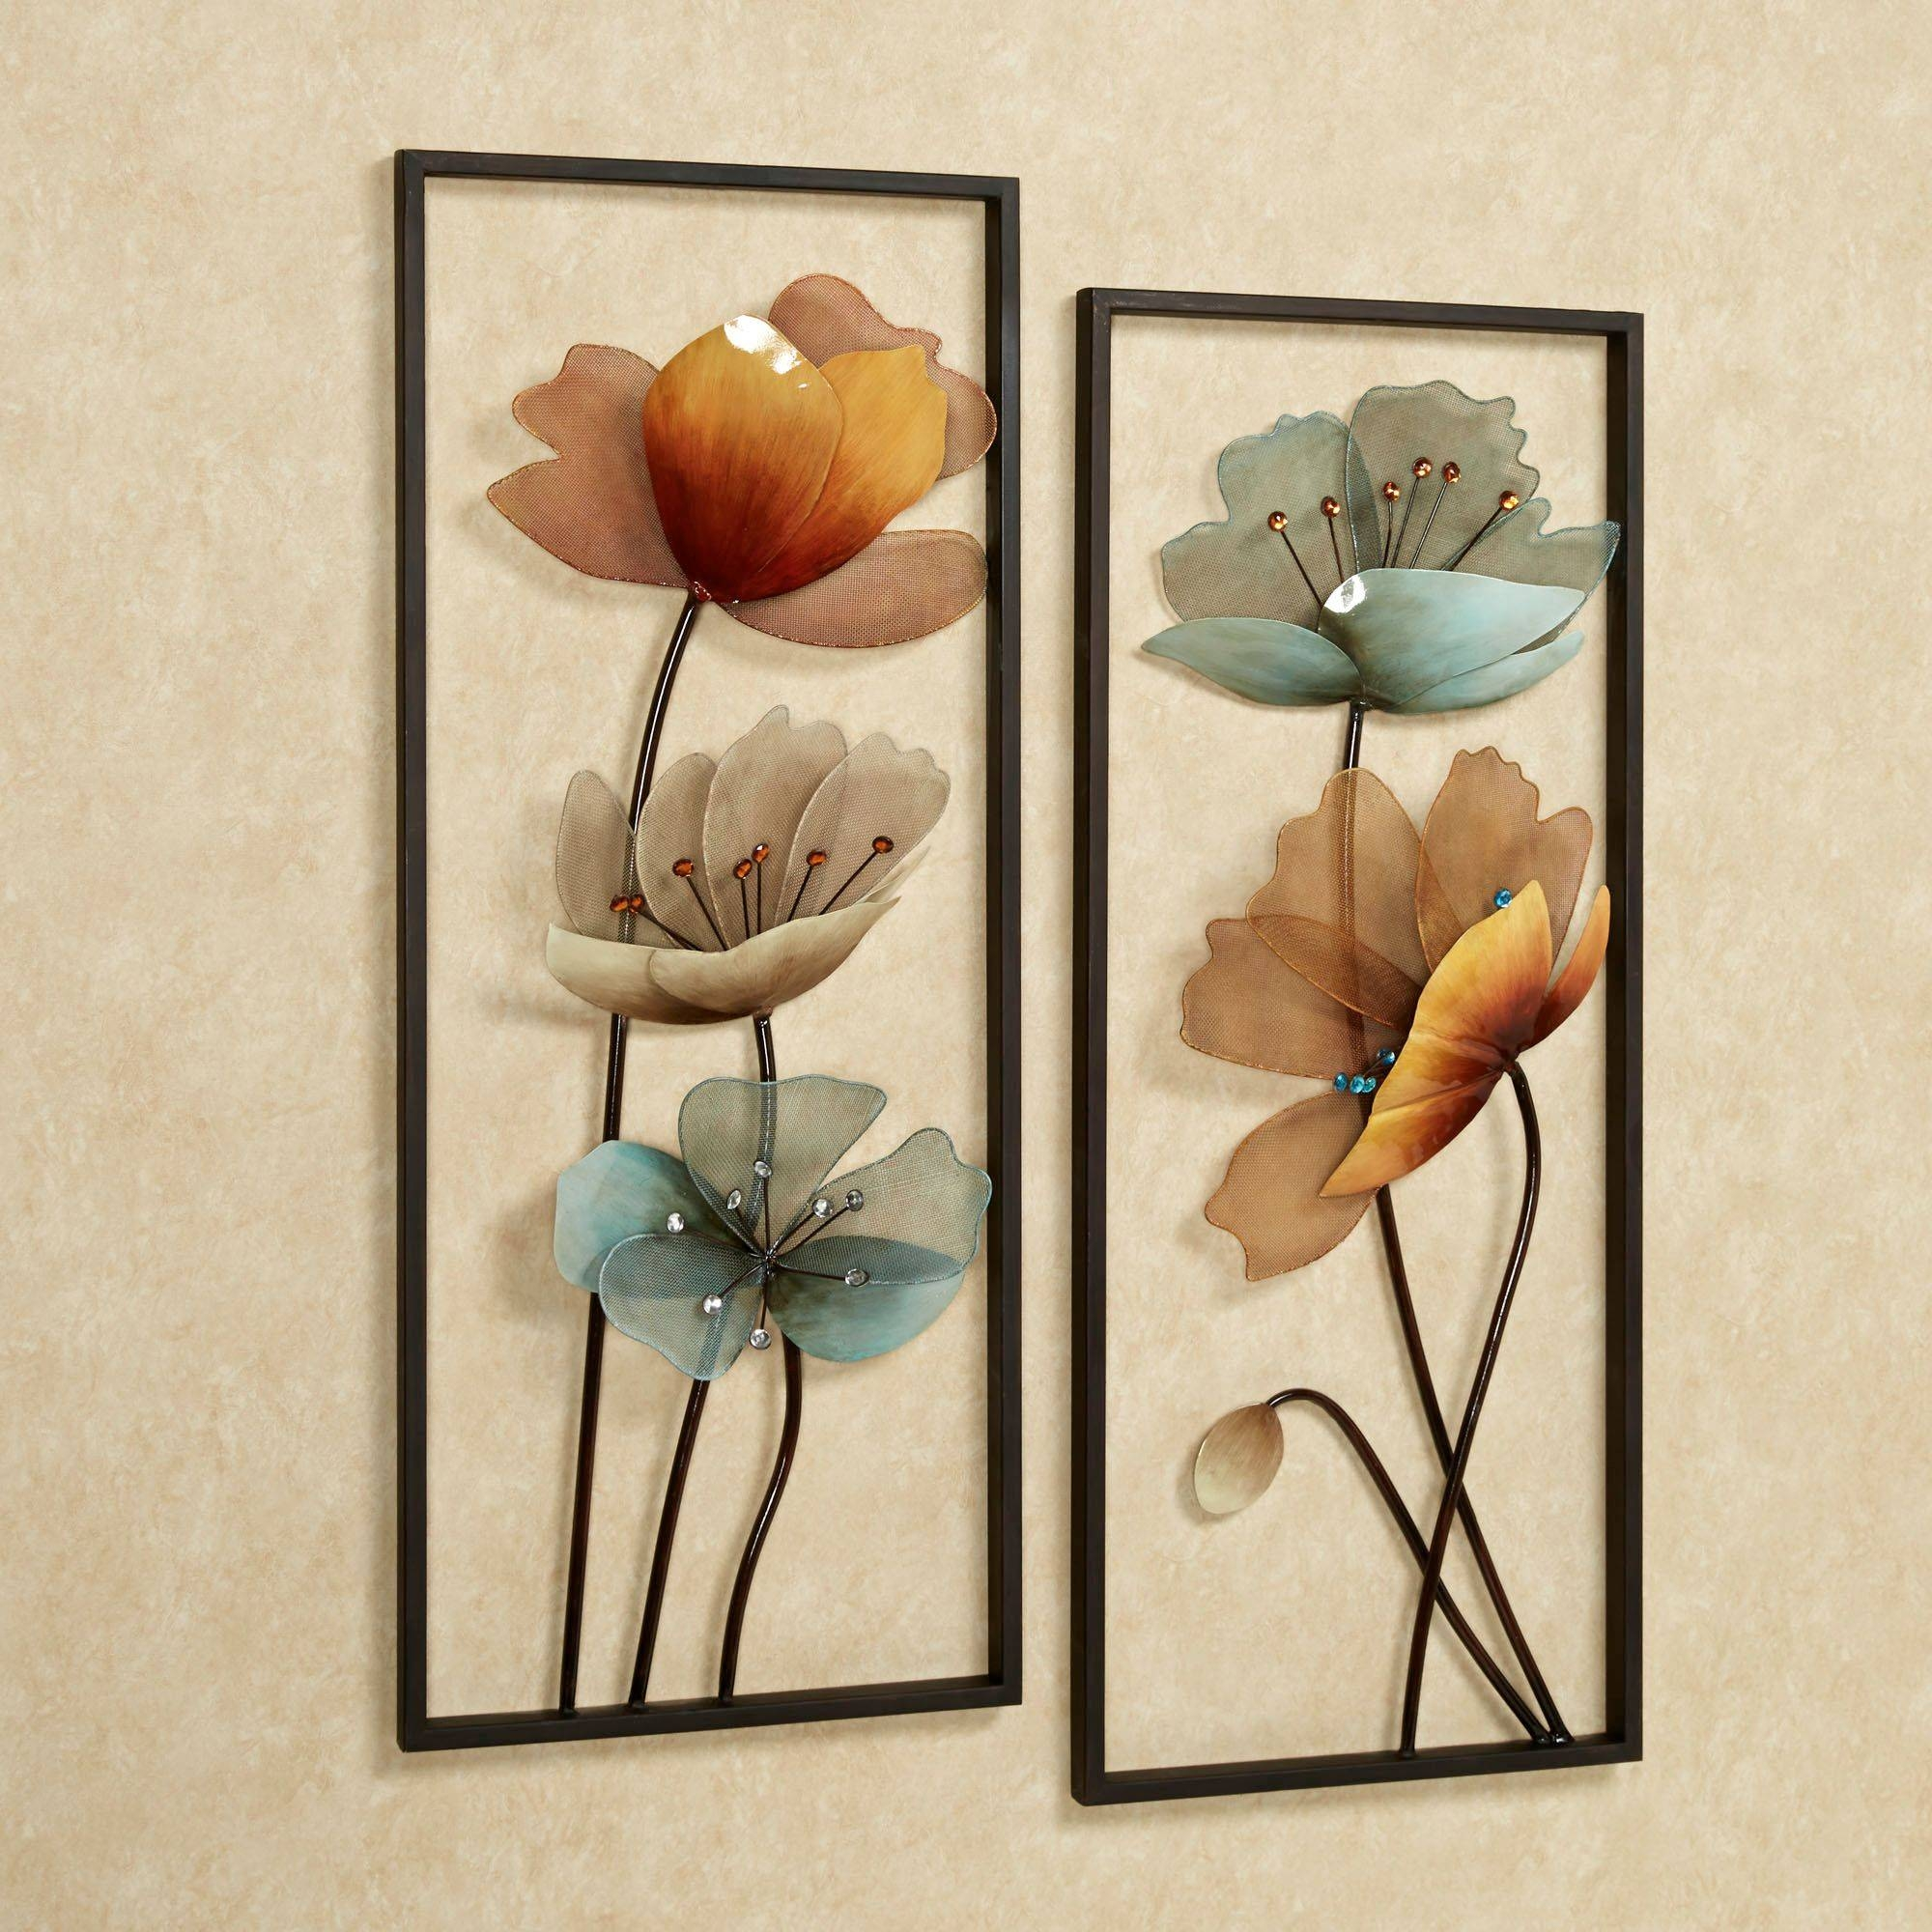 Beauty Decorative Metal Wall Art : Unique Material Decorative Pertaining To Most Current Flower Metal Wall Art (View 5 of 20)